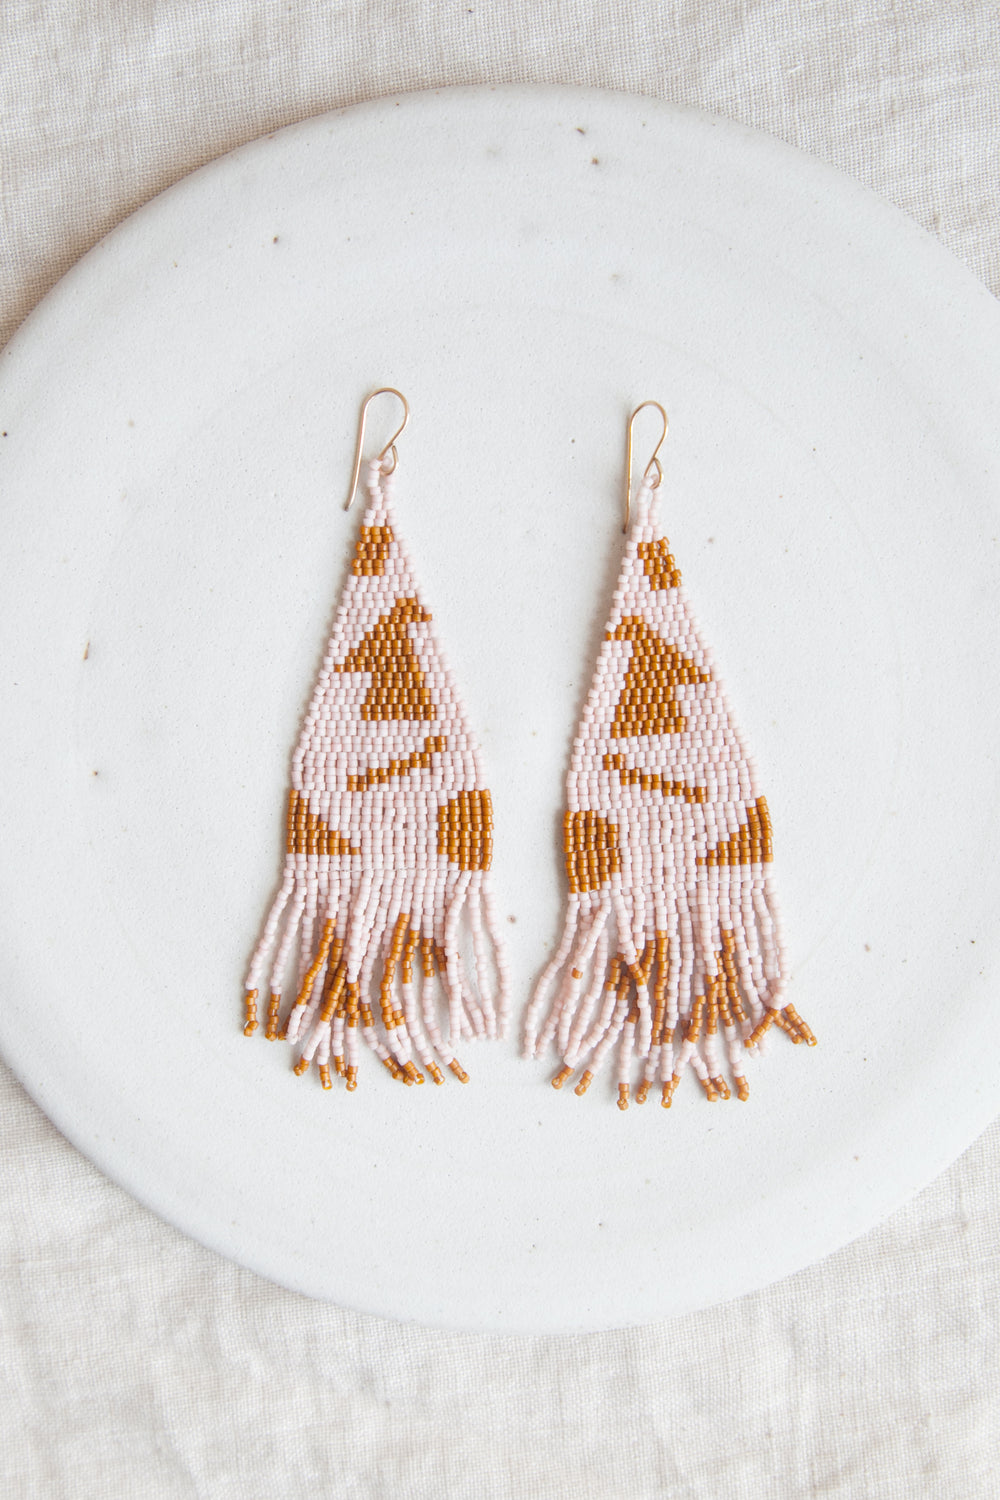 Katachi Beaded Earrings